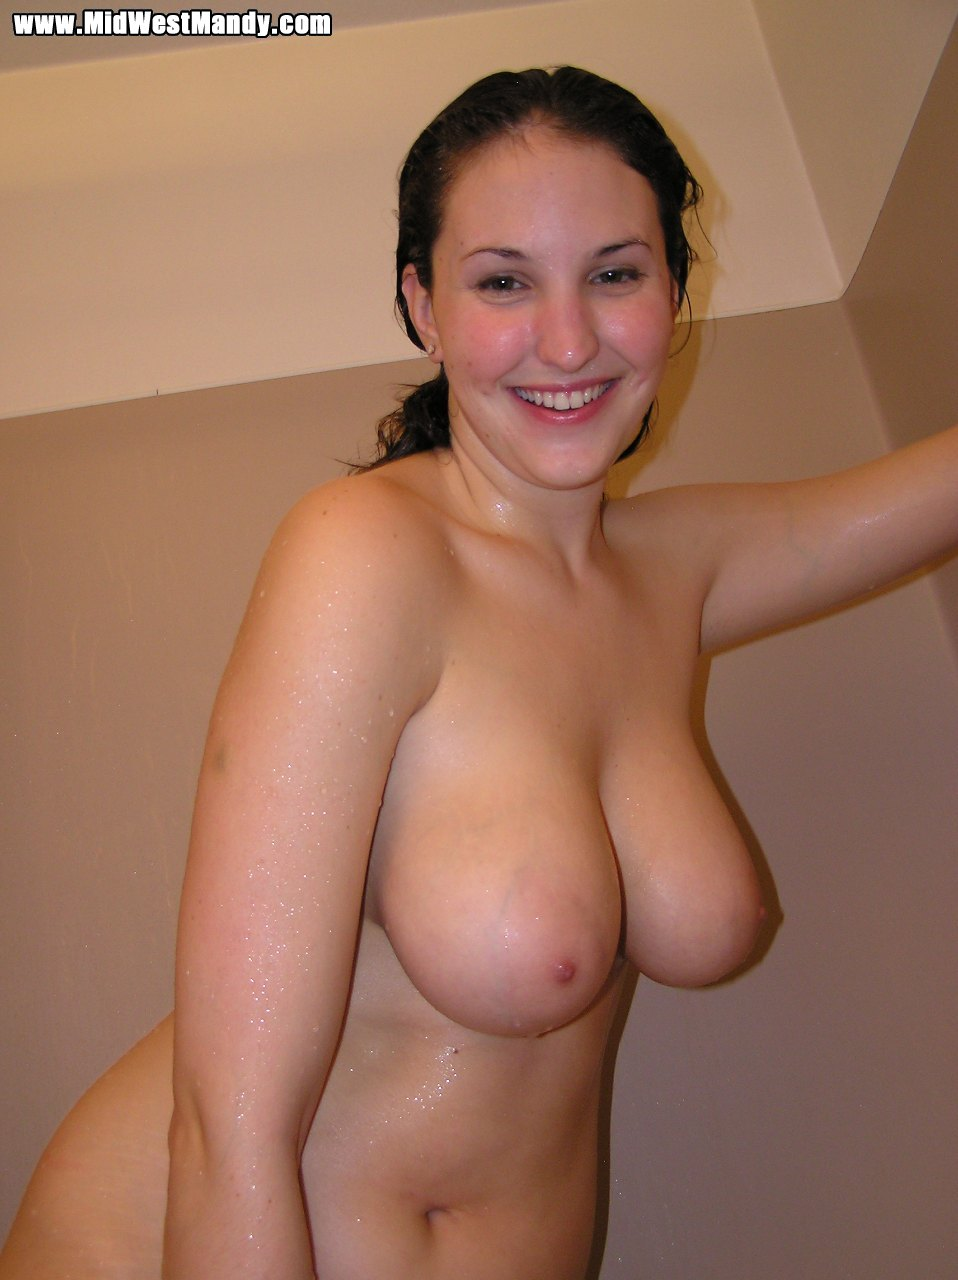 Naked picture corry pa